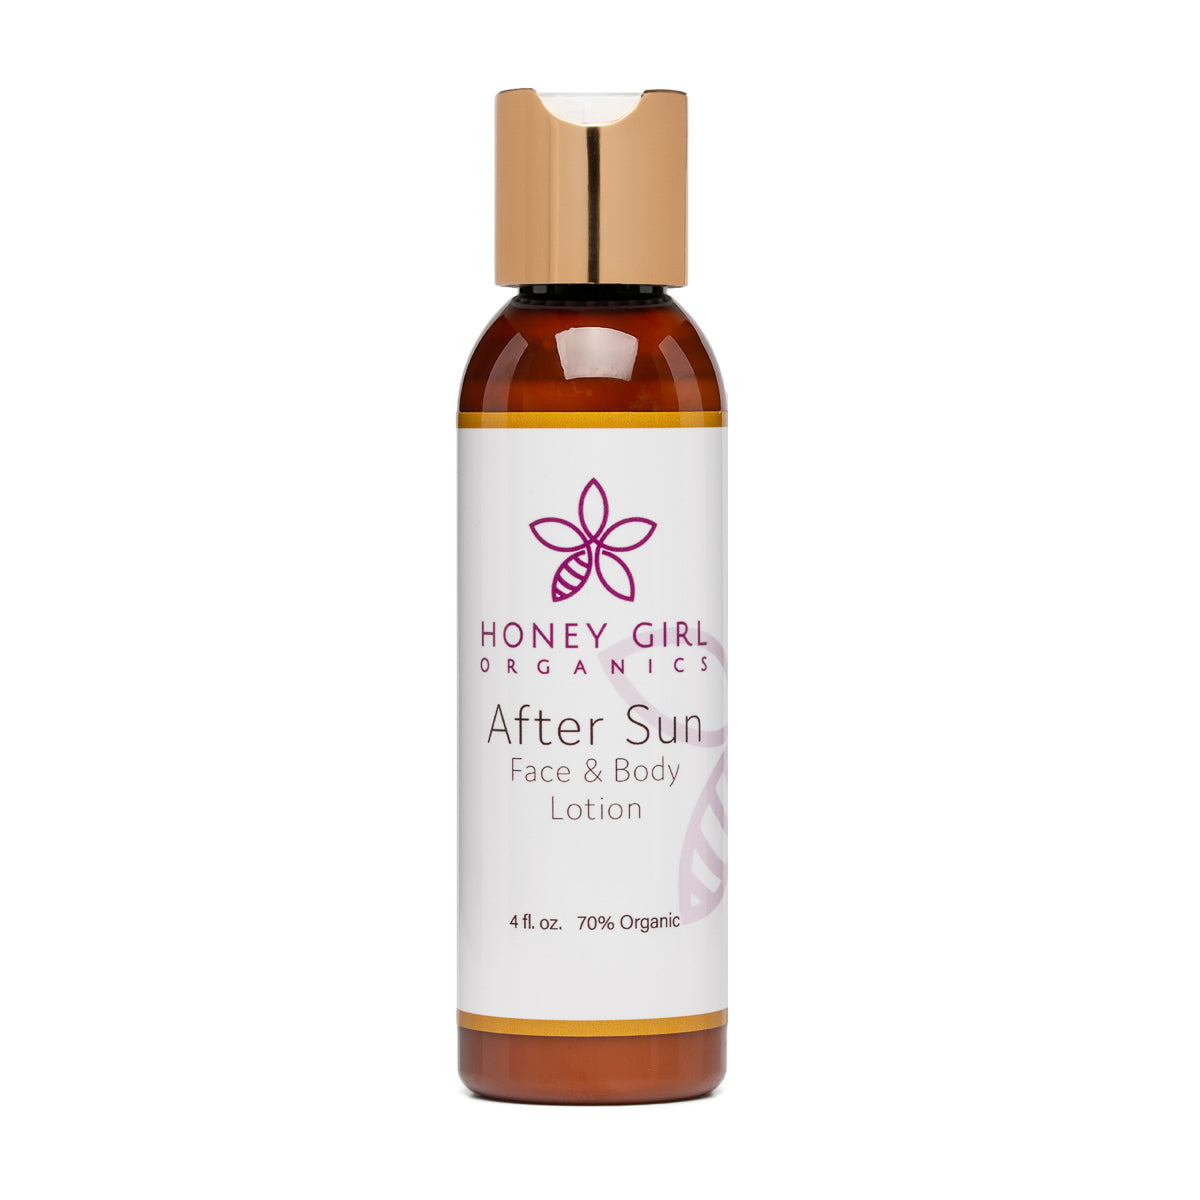 After Sun Face and Body Lotion (4 fl.oz) - Honey Girl Organics